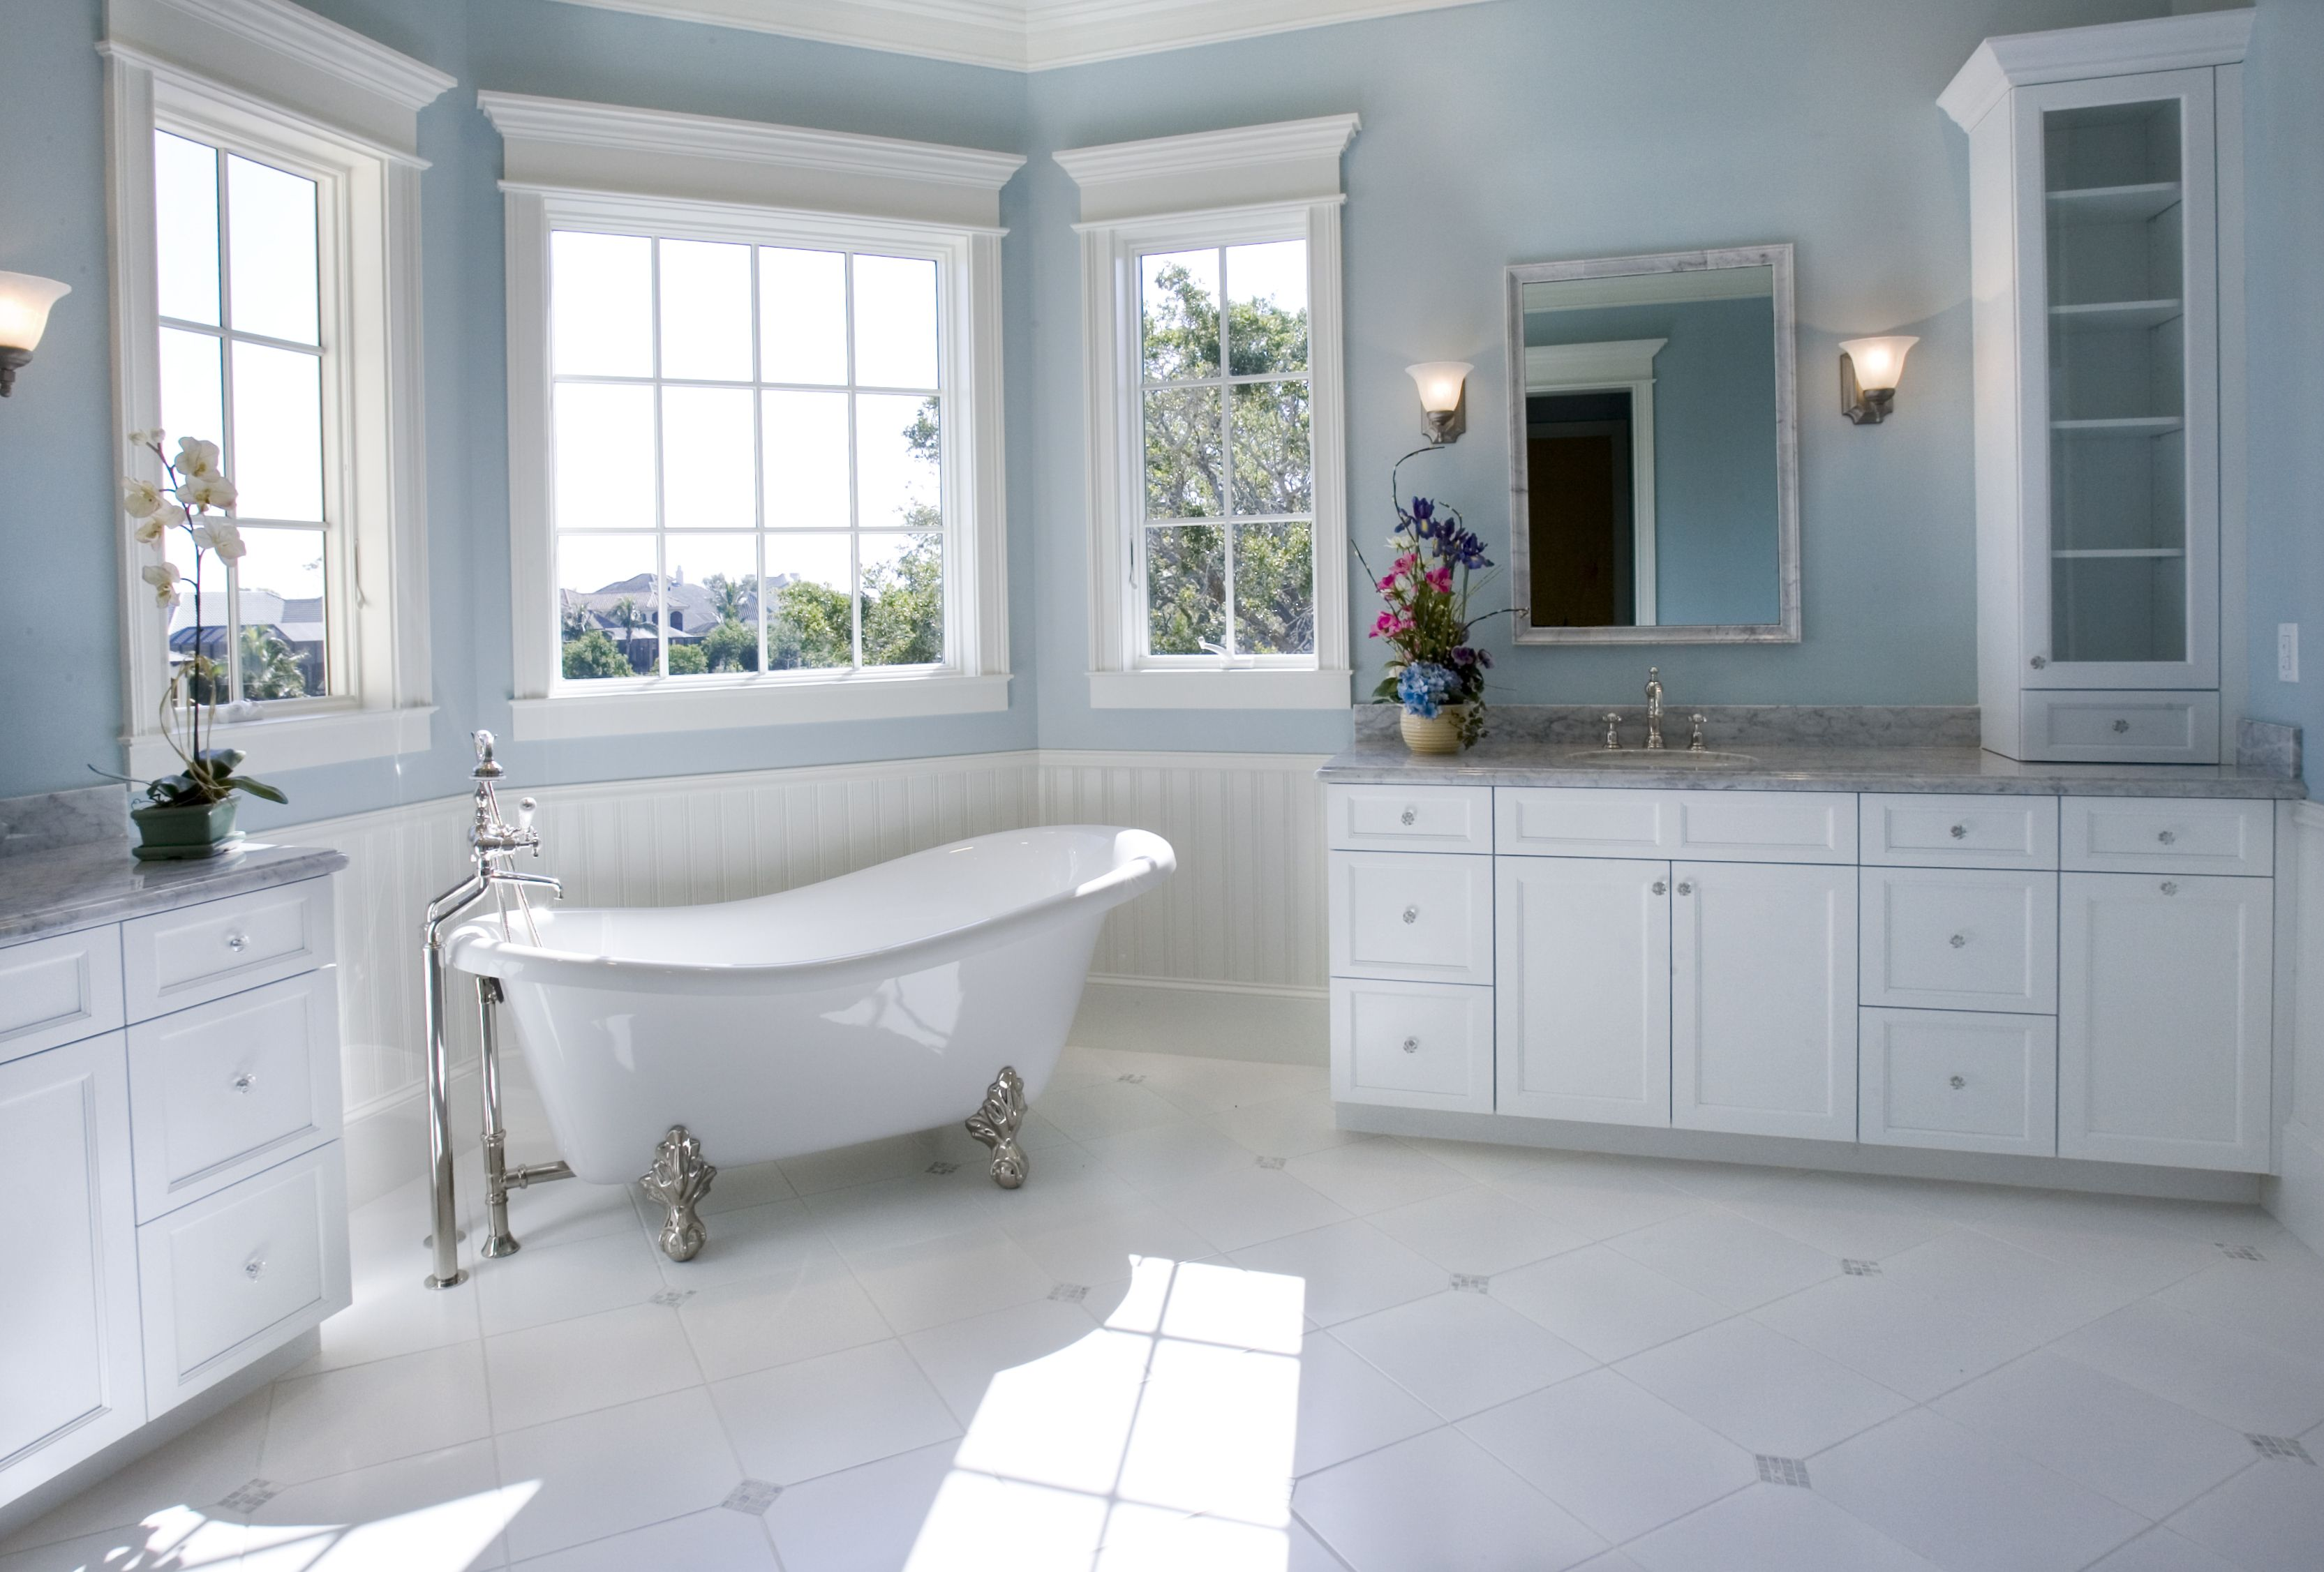 10 Bathroom Flooring Ideas Types Of Bathroom Flooring